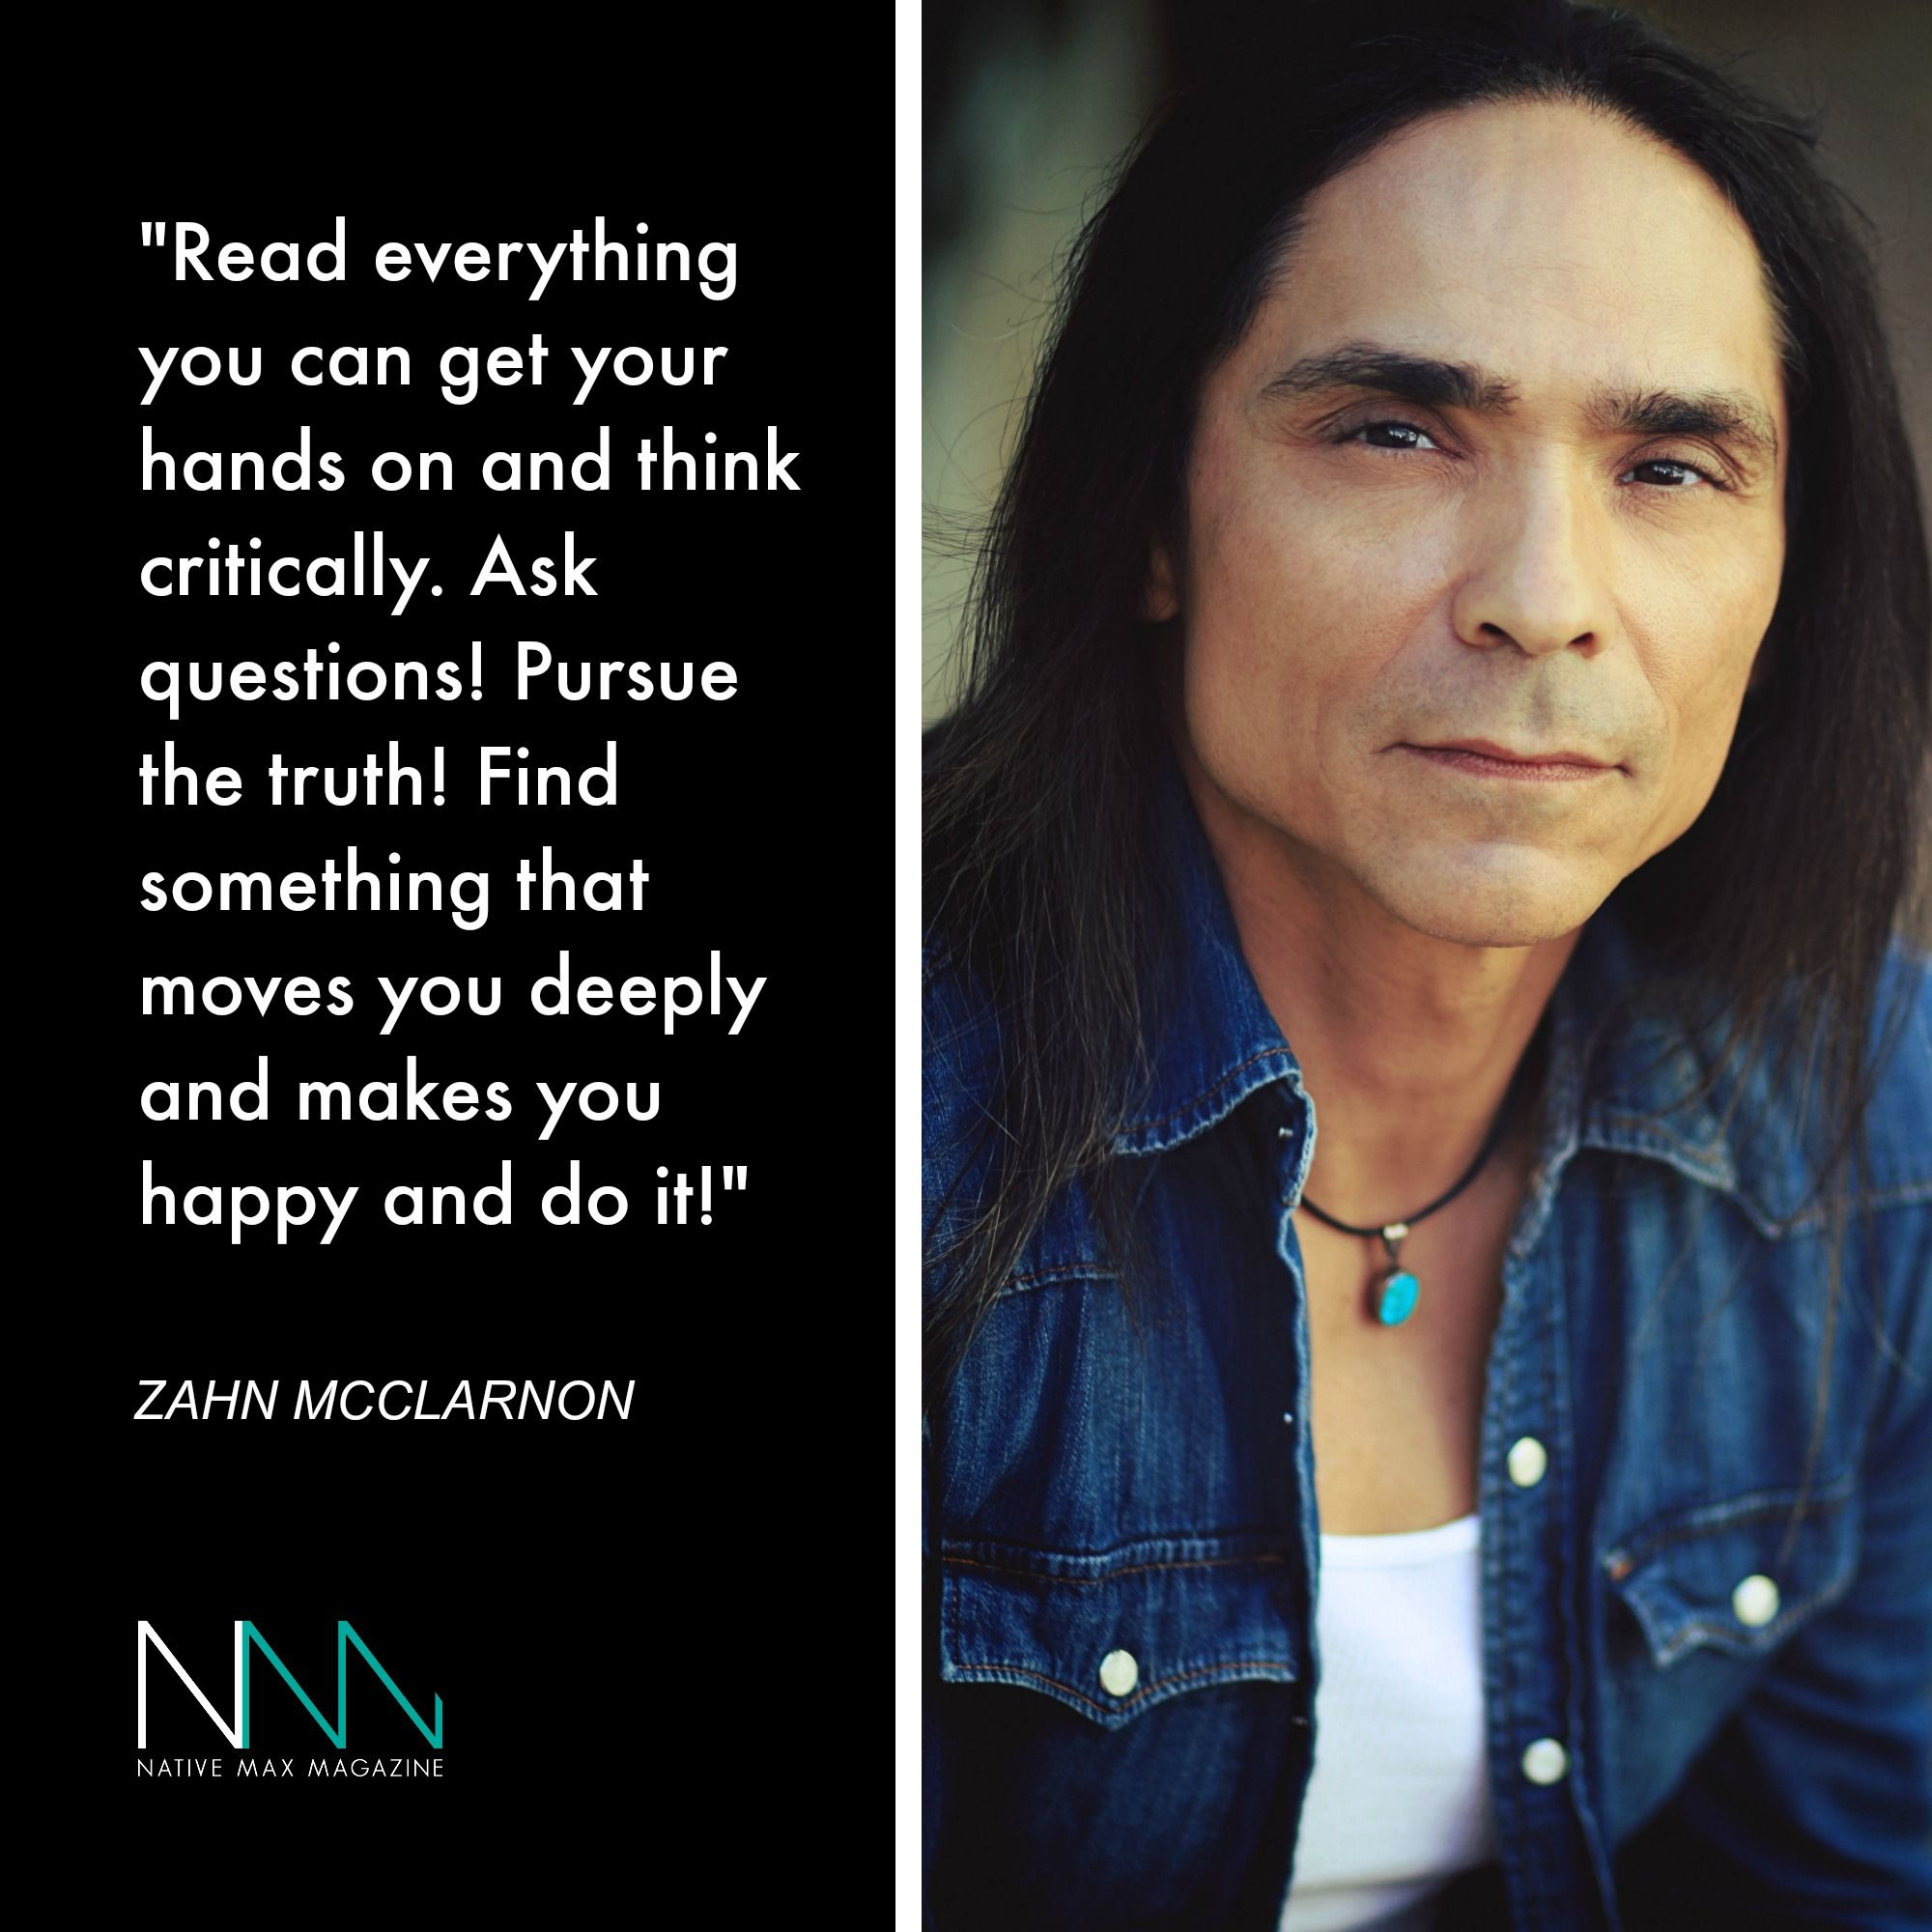 Jason Momoa Zahn Mcclarnon: Pin By Starla Peterson On Zahn T Zahn Mcclarnon Actors